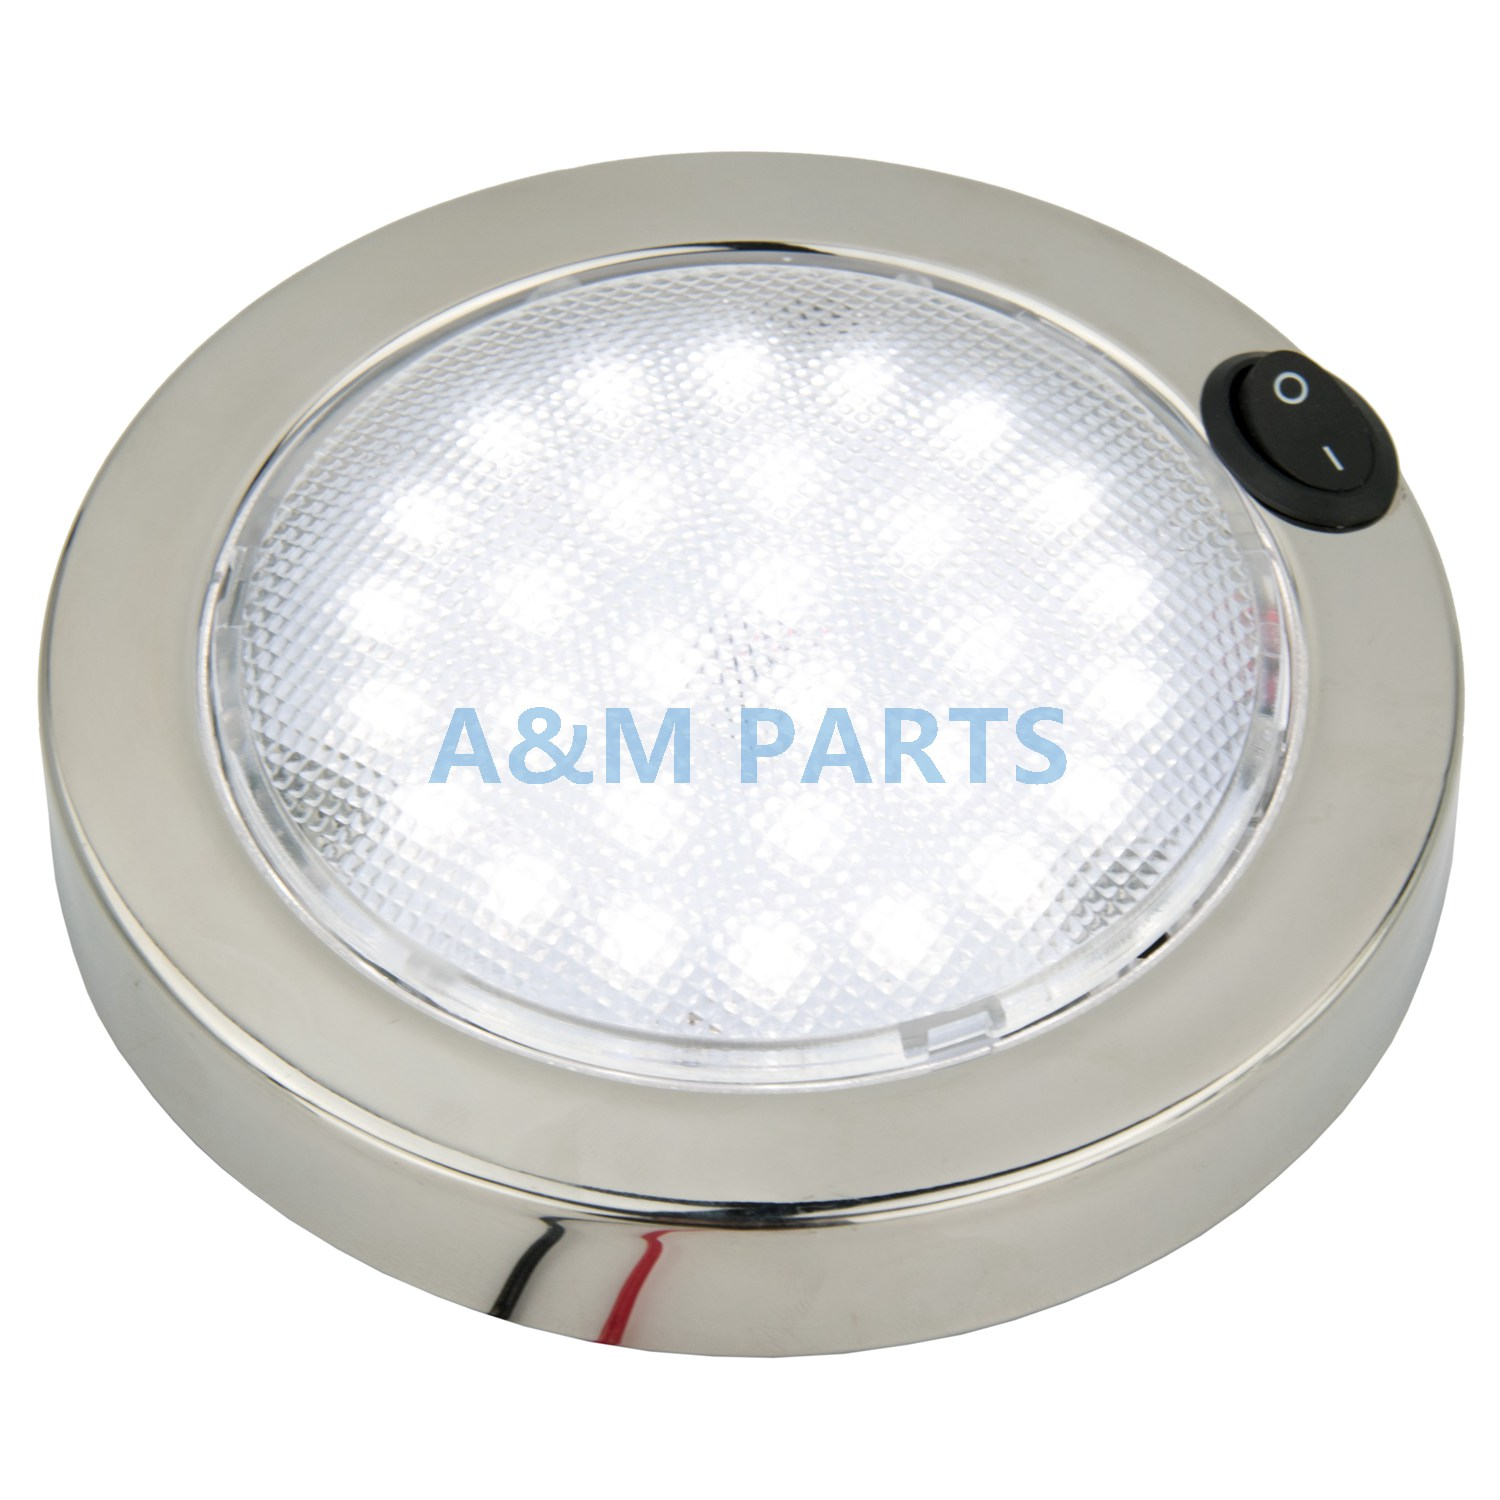 """Stainless Steel 4/"""" OD Lens NEW IN BOX  BOAT  RV Dome Light"""